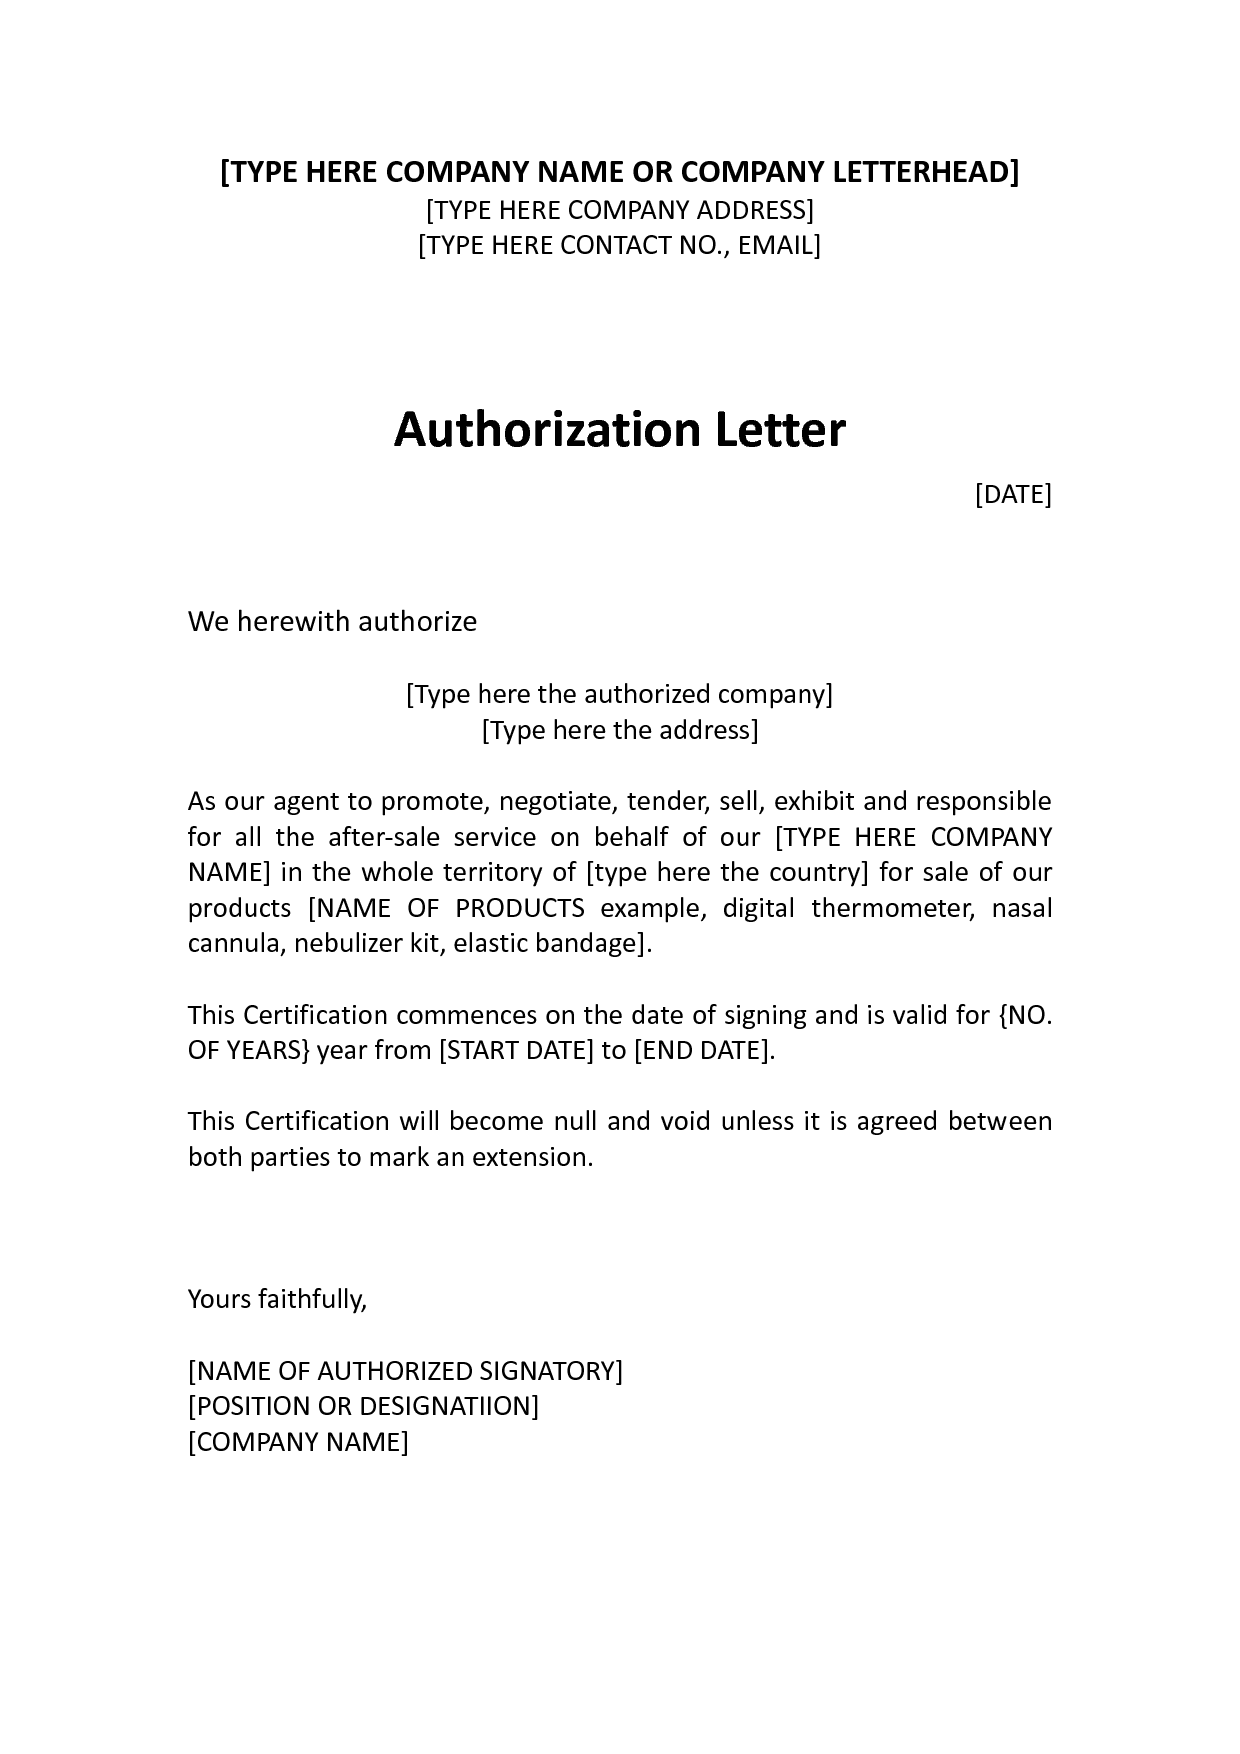 Cable Companies In My Area >> Authorization Distributor Letter - sample distributor / dealer authorization letter given by a ...